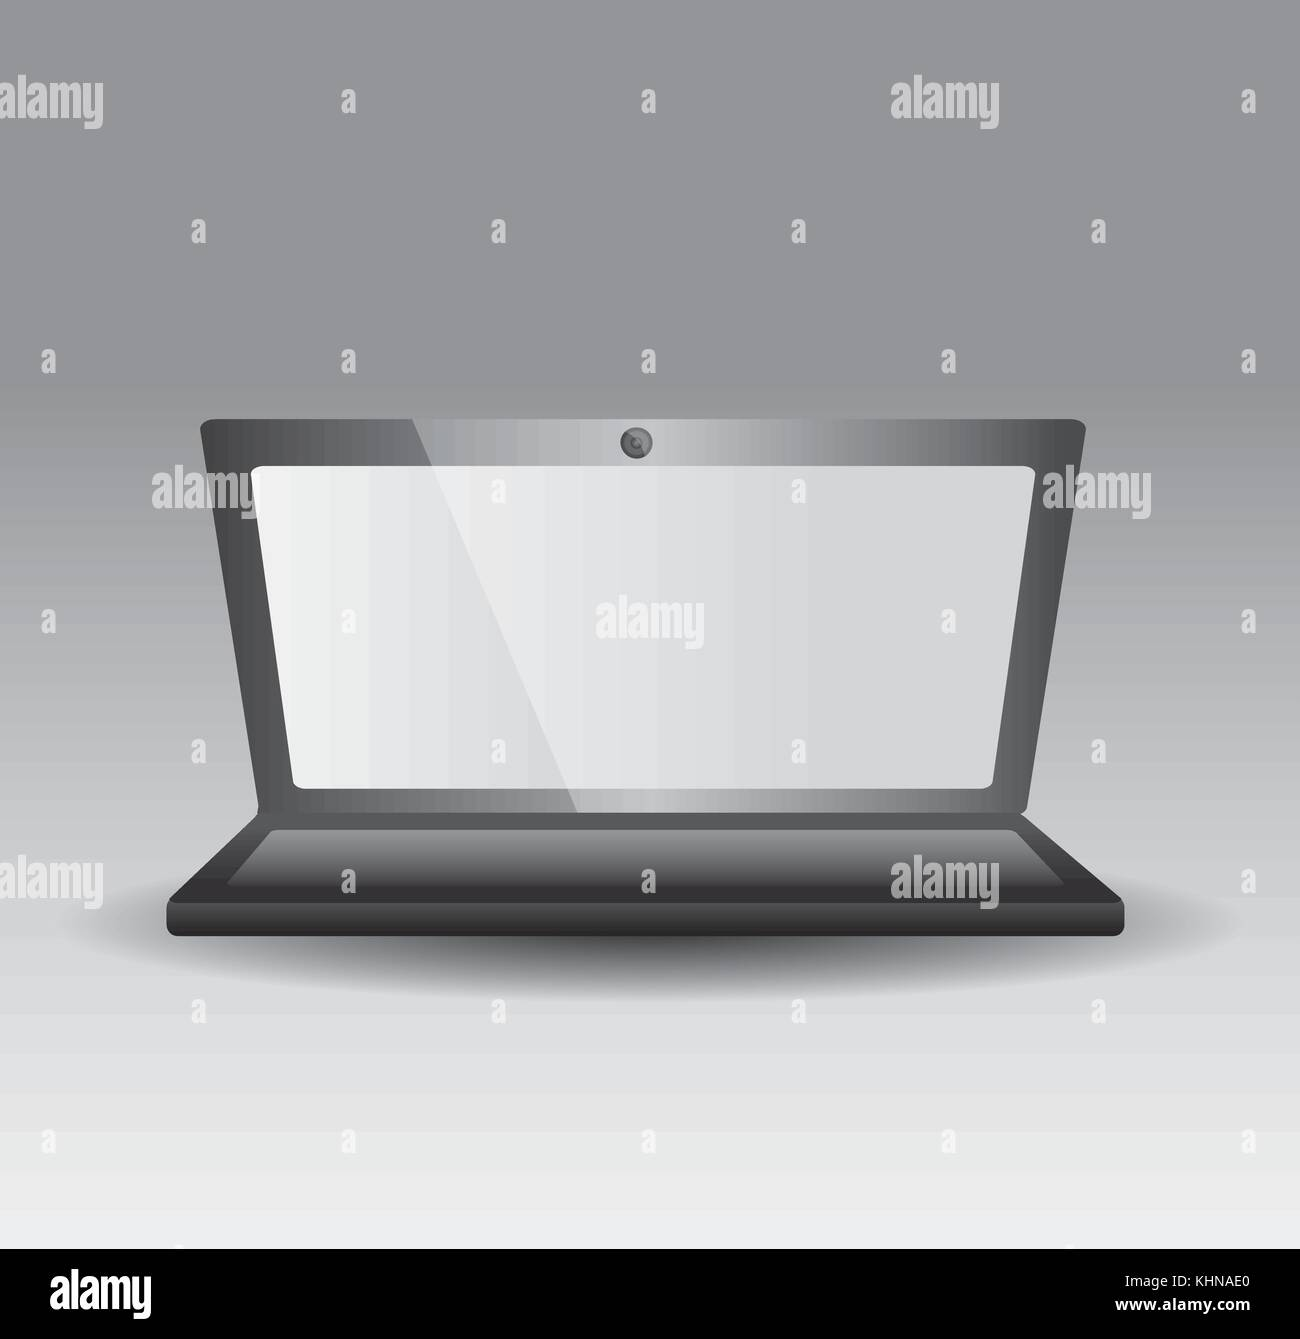 opened laptop personal computer gadget technology - Stock Image